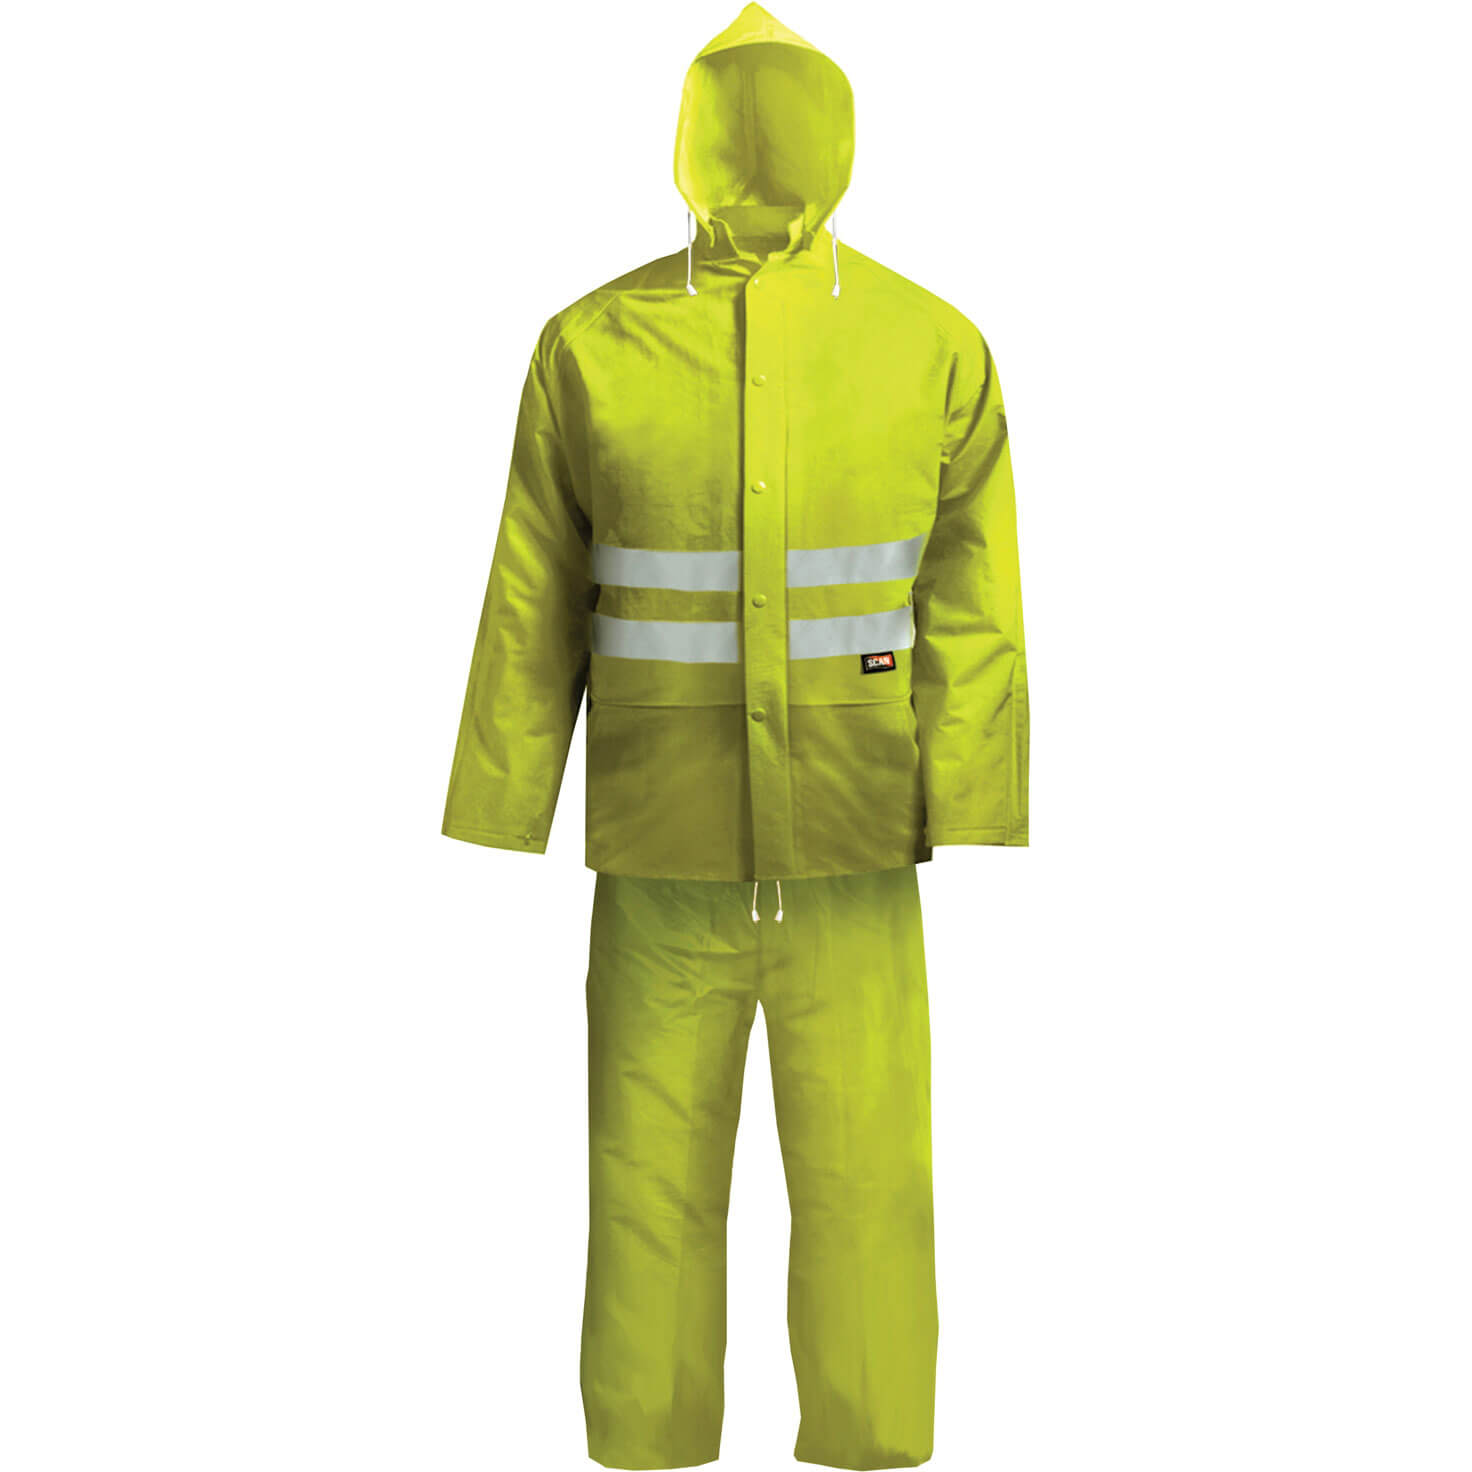 Image of Scan Hi Vis 2 Piece Waterproof Rain Suit Yellow 2XL